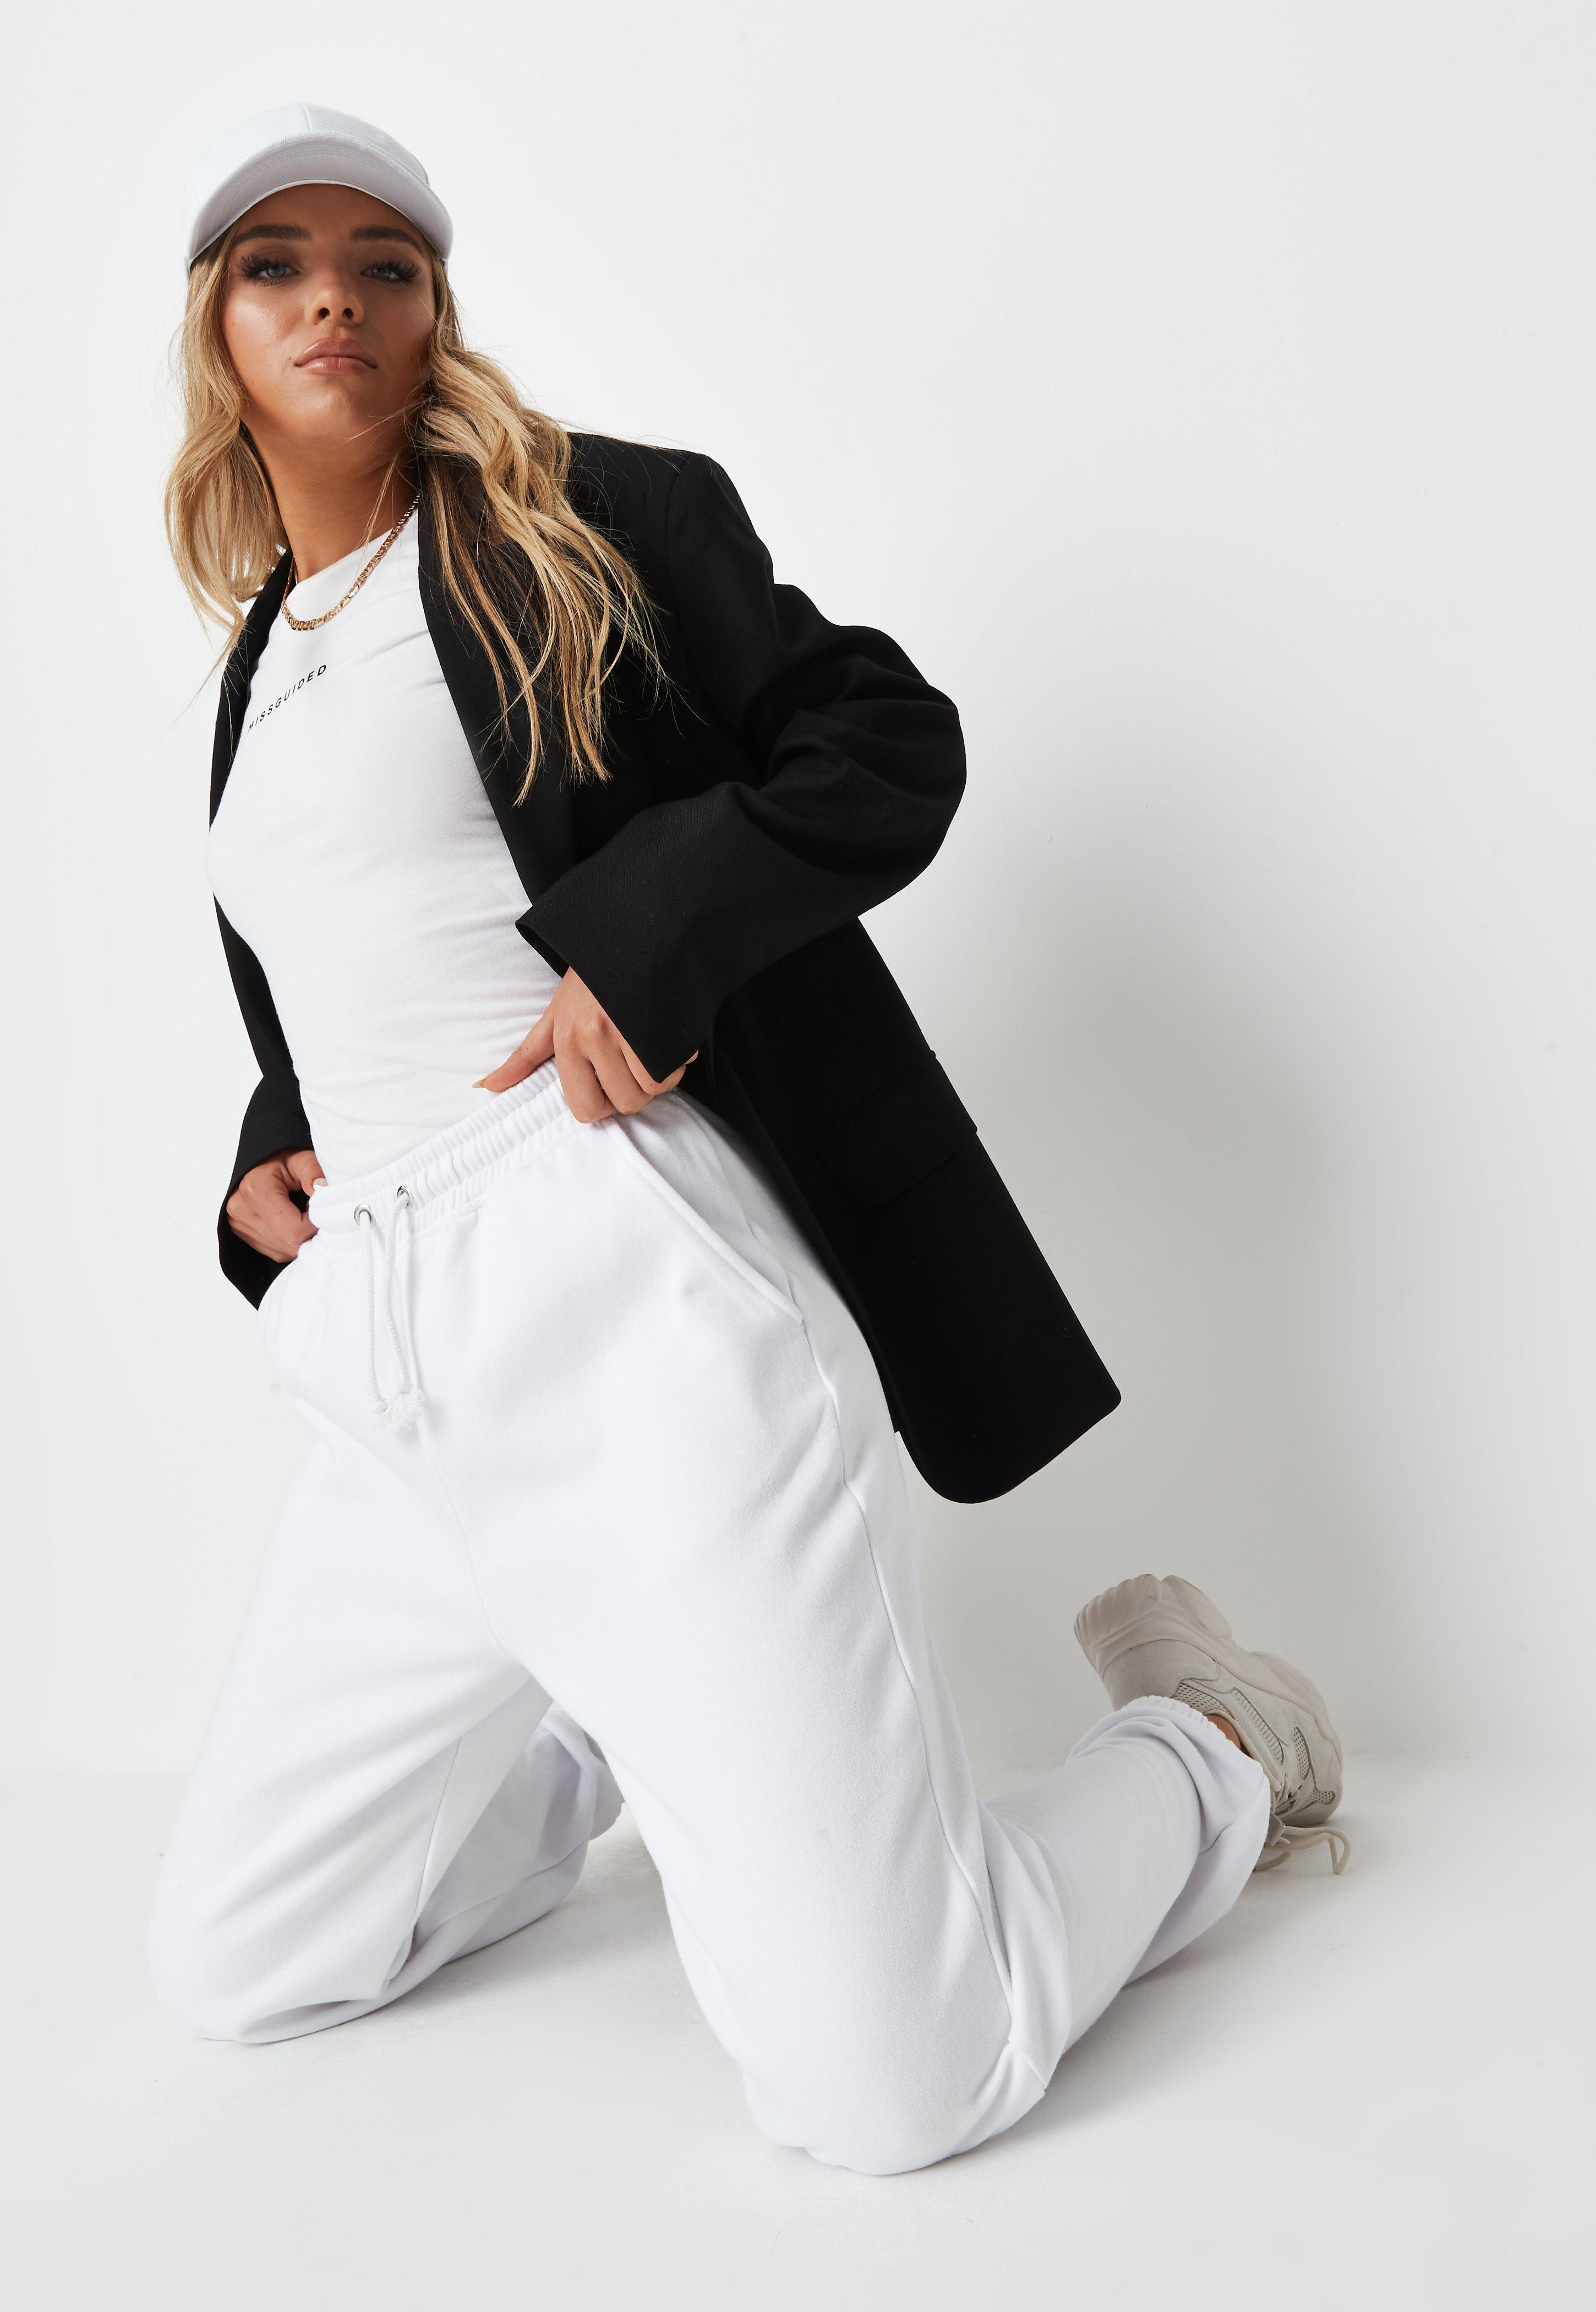 727c184b968b Petite Clothing | Womens Petite Clothes Online - Missguided